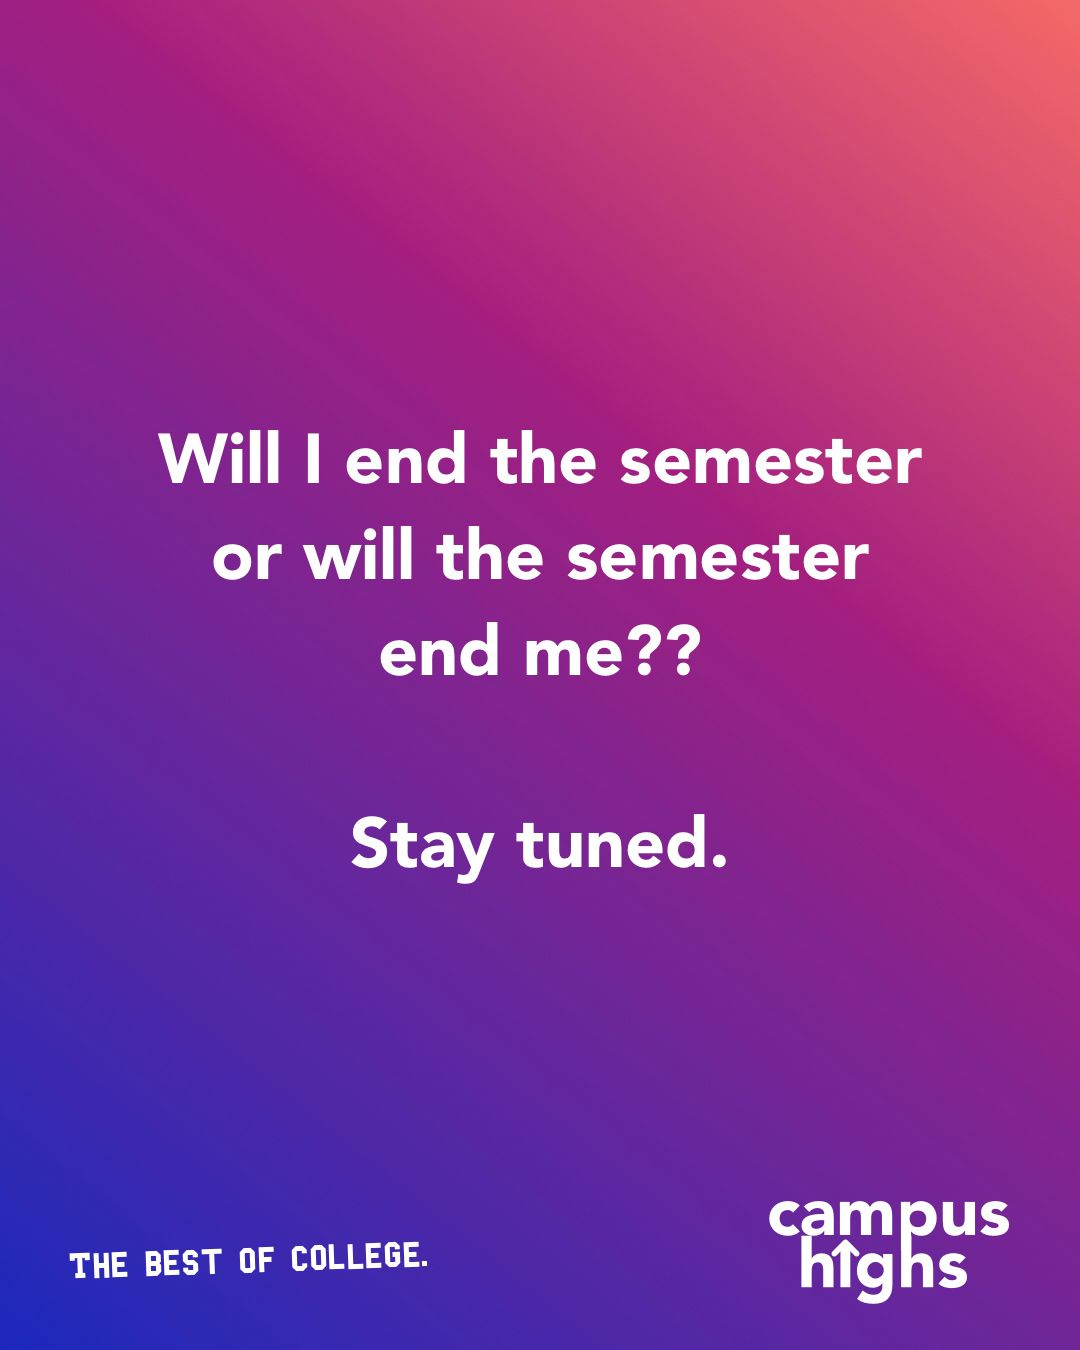 Pin By Syaira On Pudeh Funny Pundeh Funny College Memes College Memes College Quotes